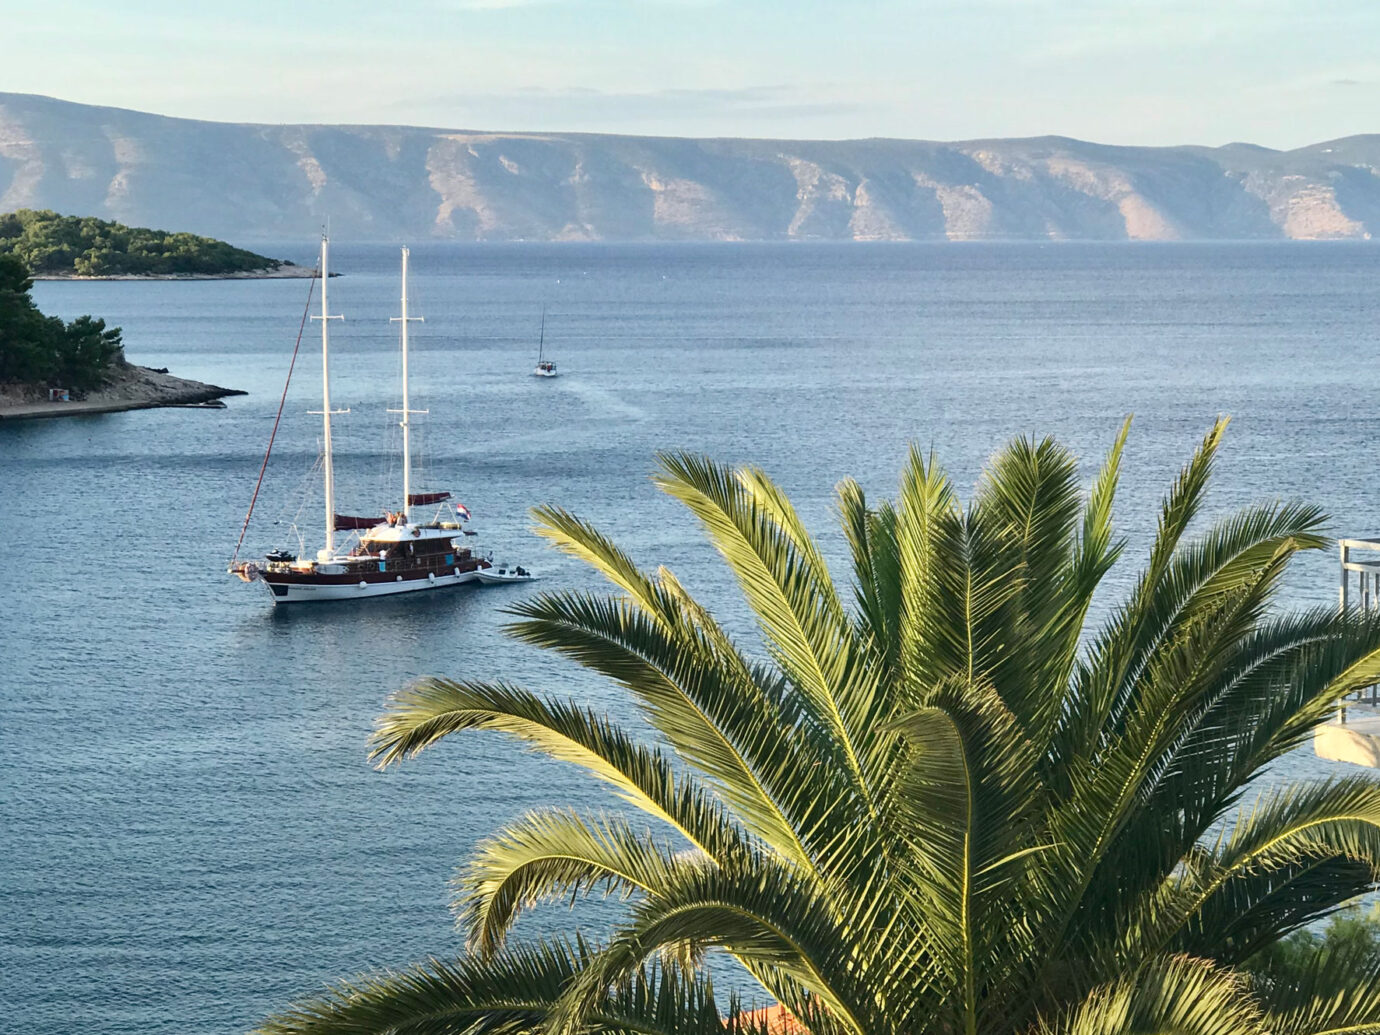 View of a boat on the water in Hvar, Croatia